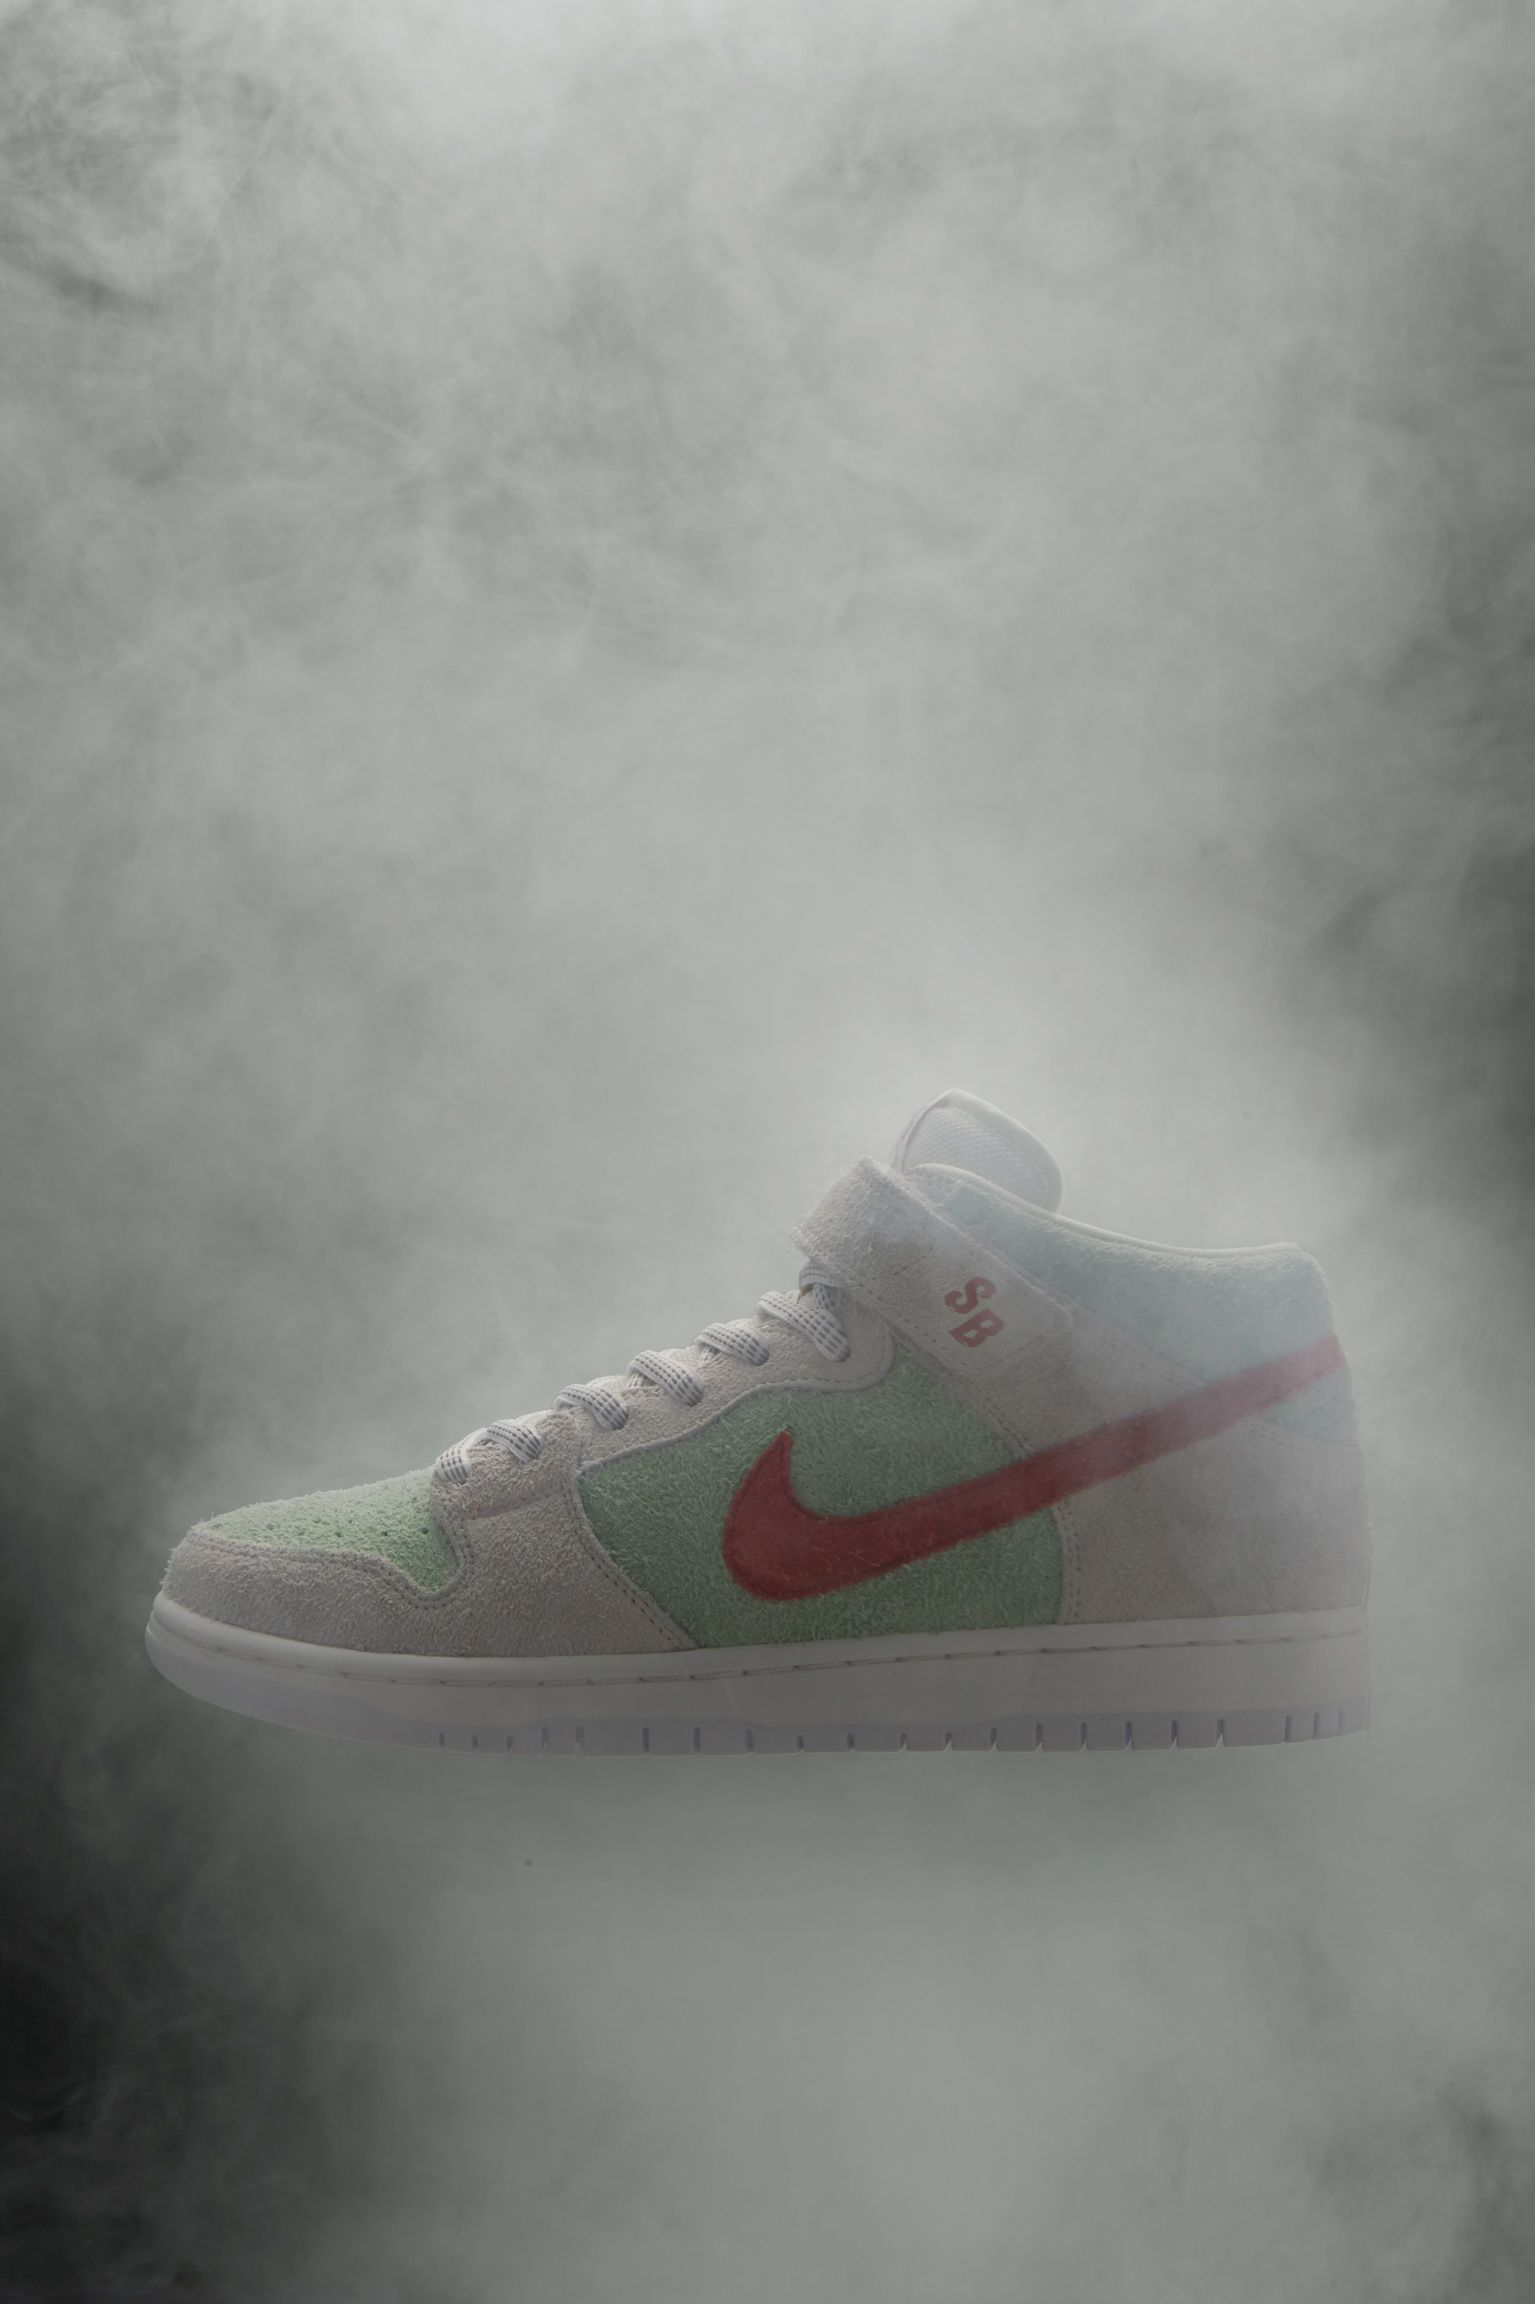 Nike SB Dunk Mid Pro Todd Bratrud 'White Widow' Release Date